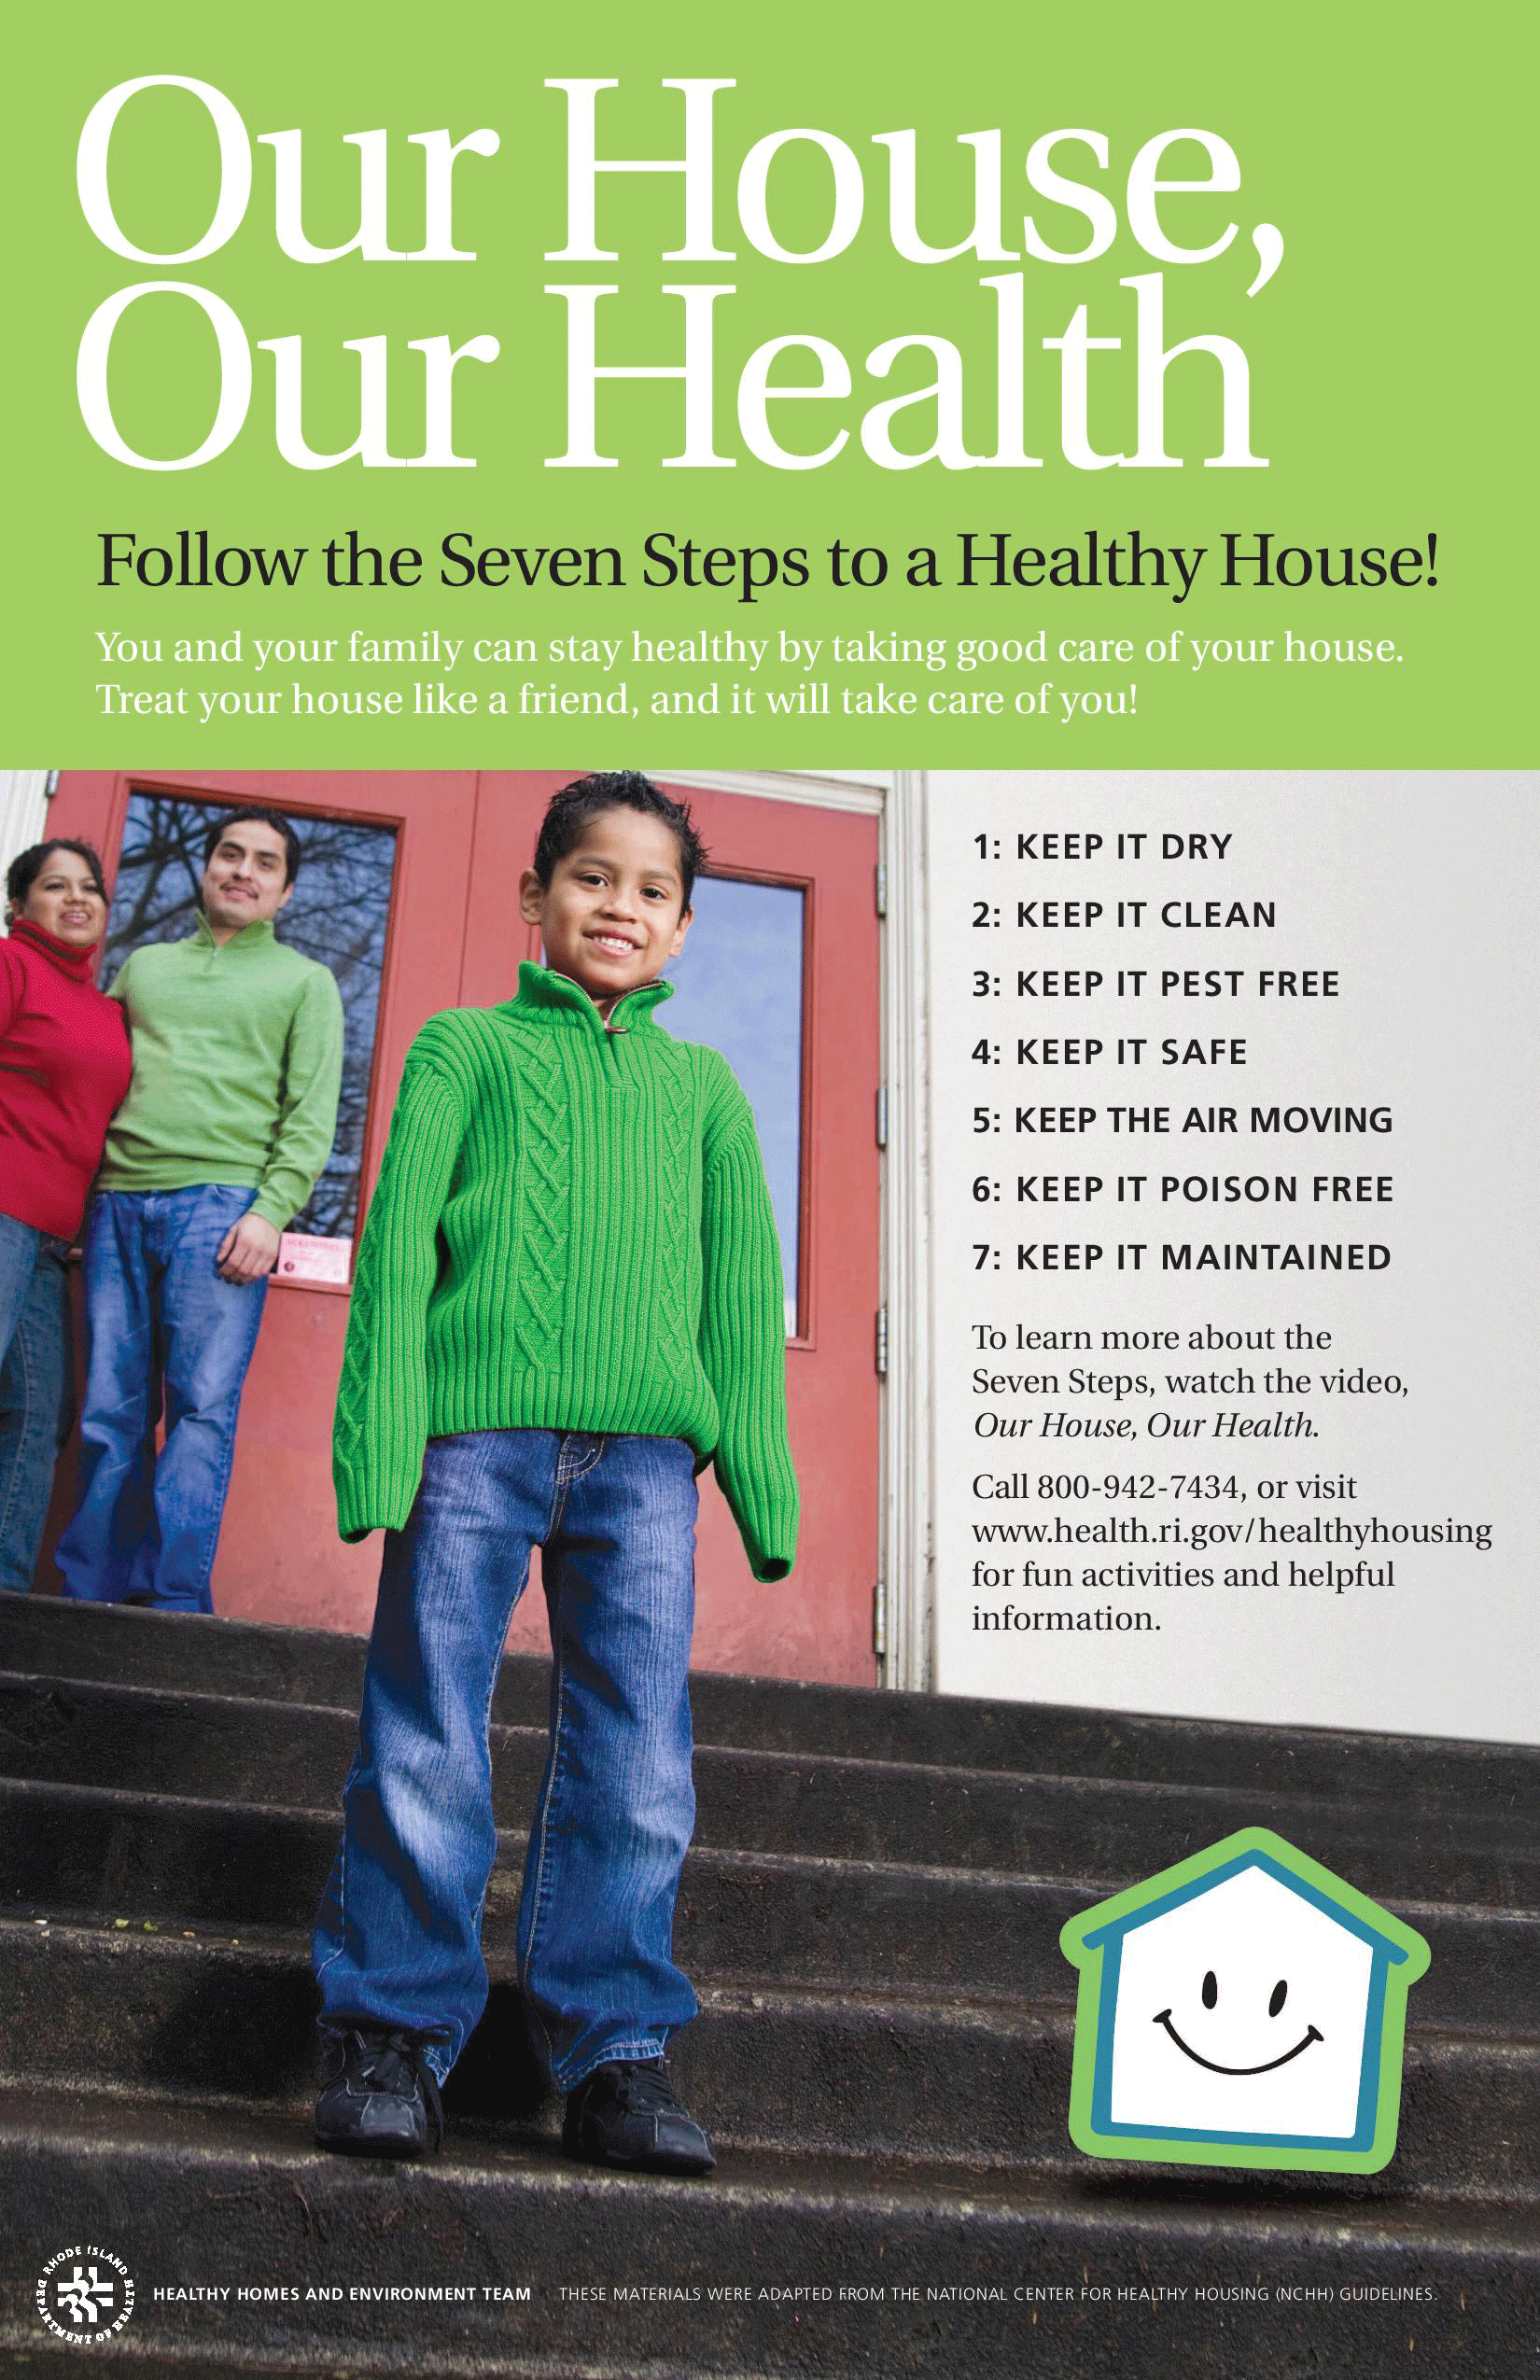 Our House, Our Home - Follow the 7 Steps to a Healthy House!